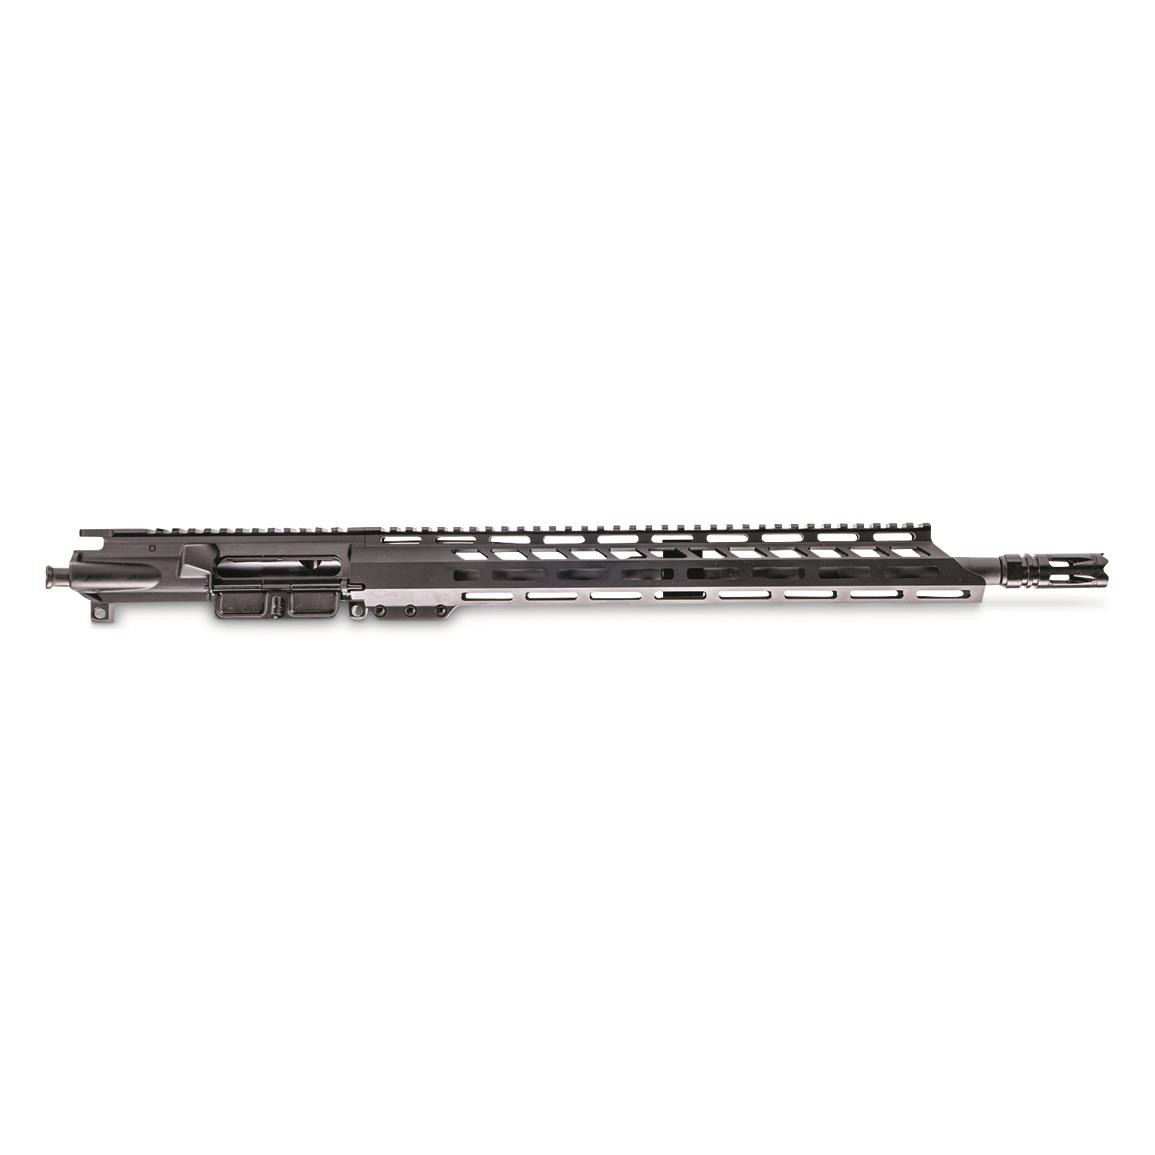 "Anderson AM-15 5.56 NATO/.223 Rem. Upper Receiver Less BCG/Charge Handle, 16"" Barrel, 15"" M-LOK"